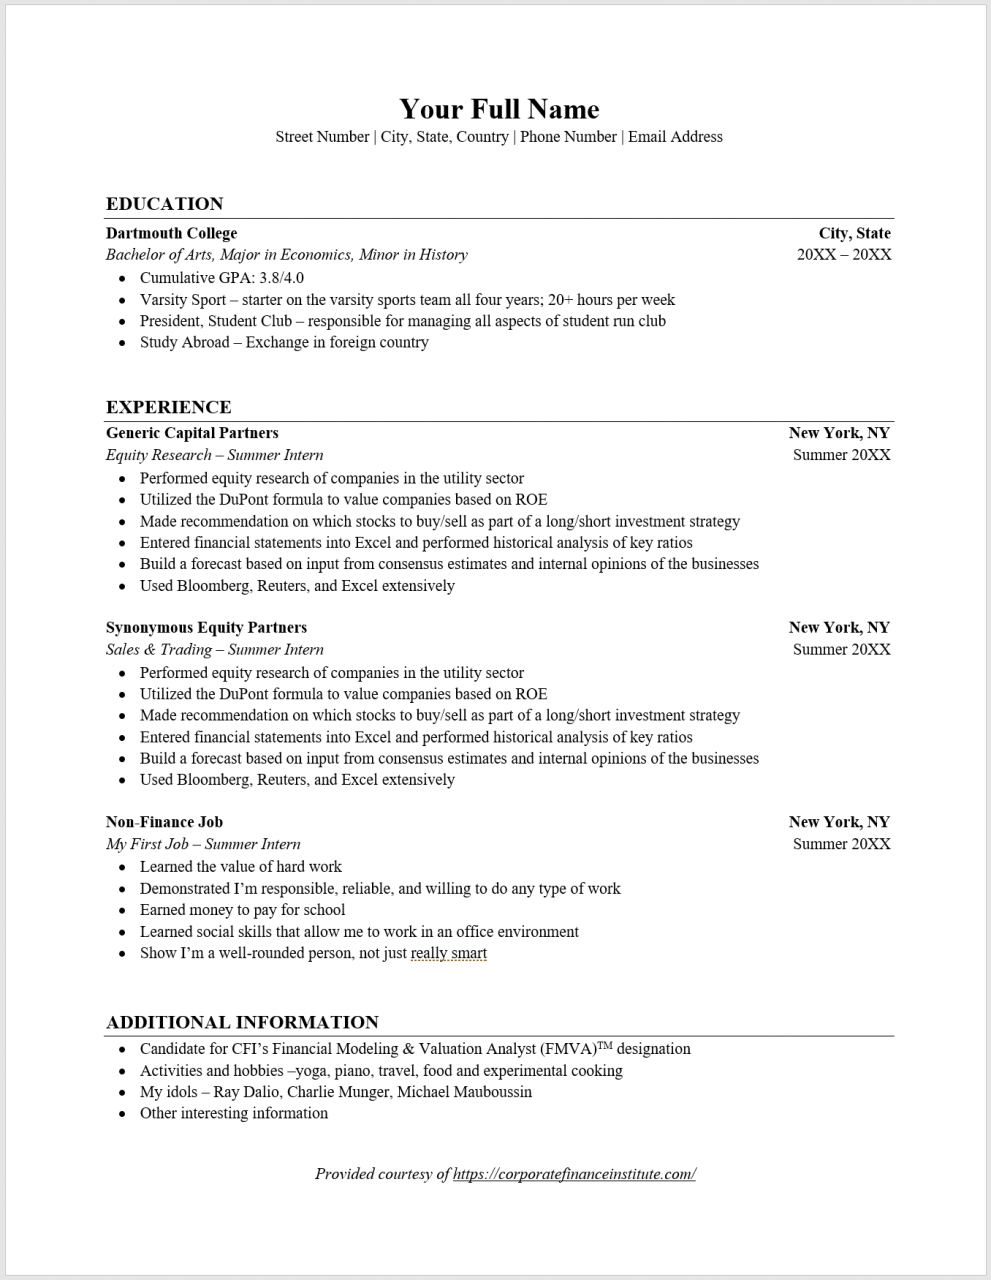 How to List Minor on Resume - Overview, Guide, Examples